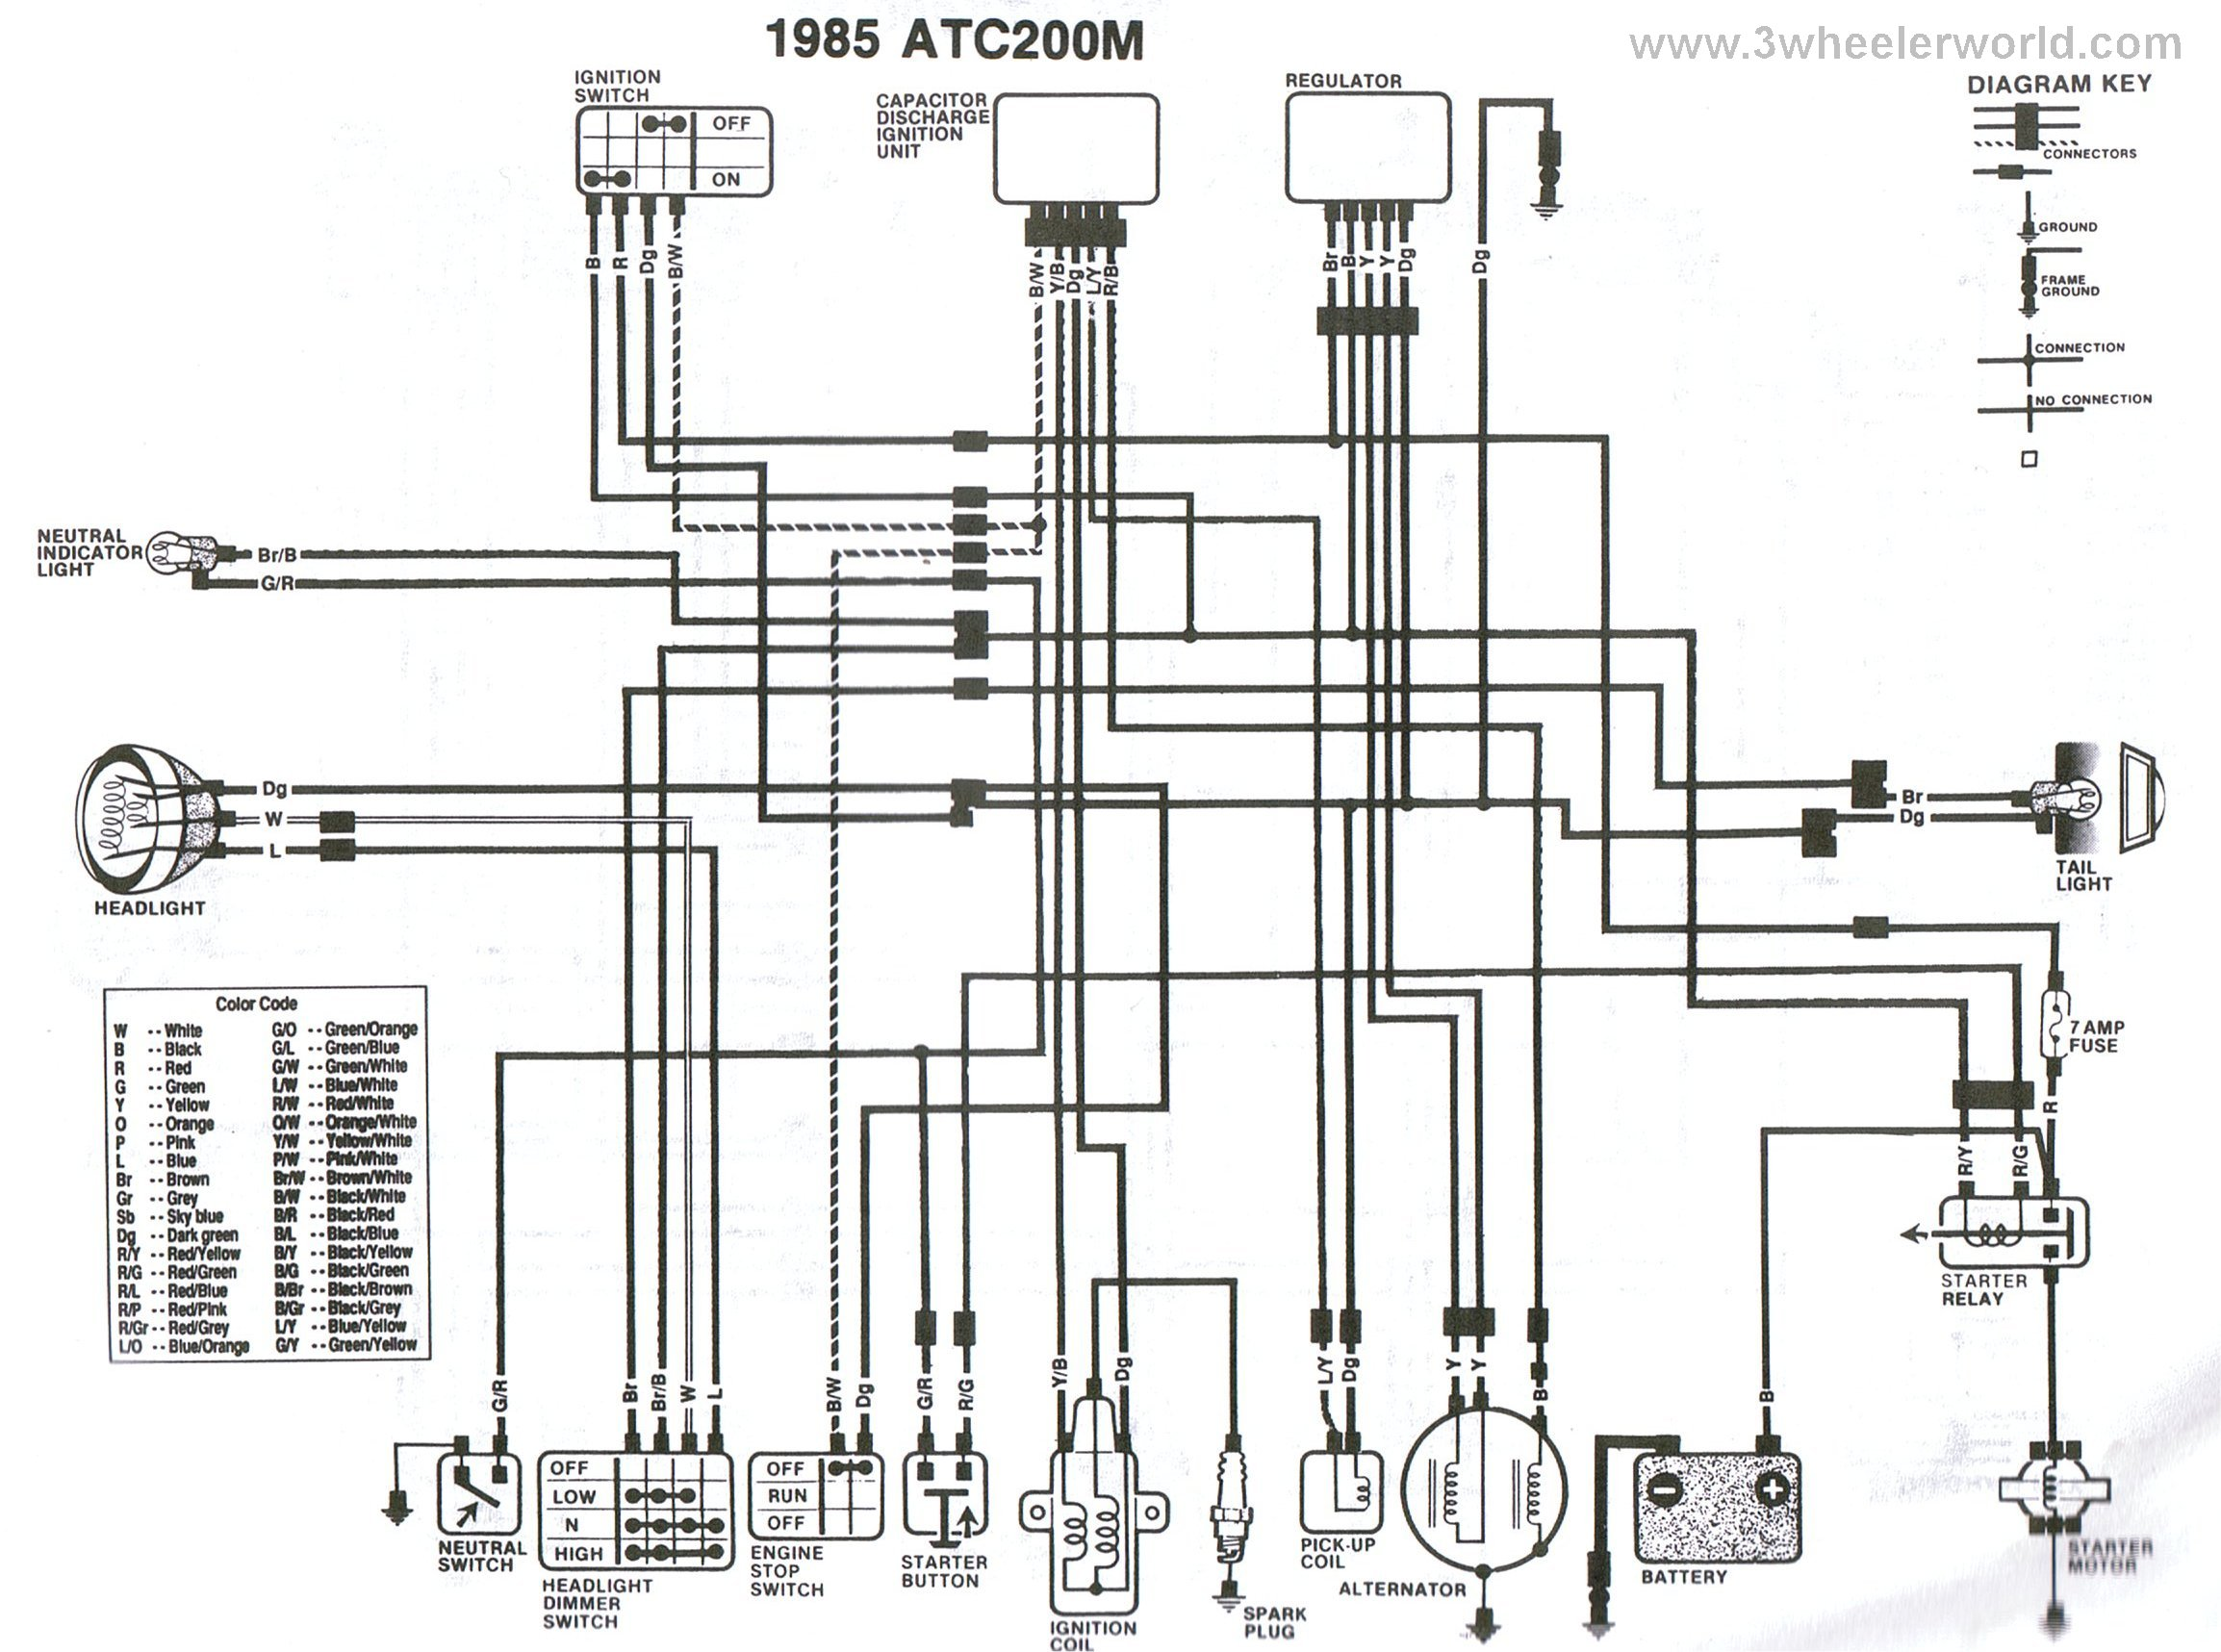 Honda Atc125m Wiring Diagram | Wiring Diagram on honda 185s wiring diagram, honda 200m wiring diagram, honda 250r wiring diagram, honda 200s wiring diagram,